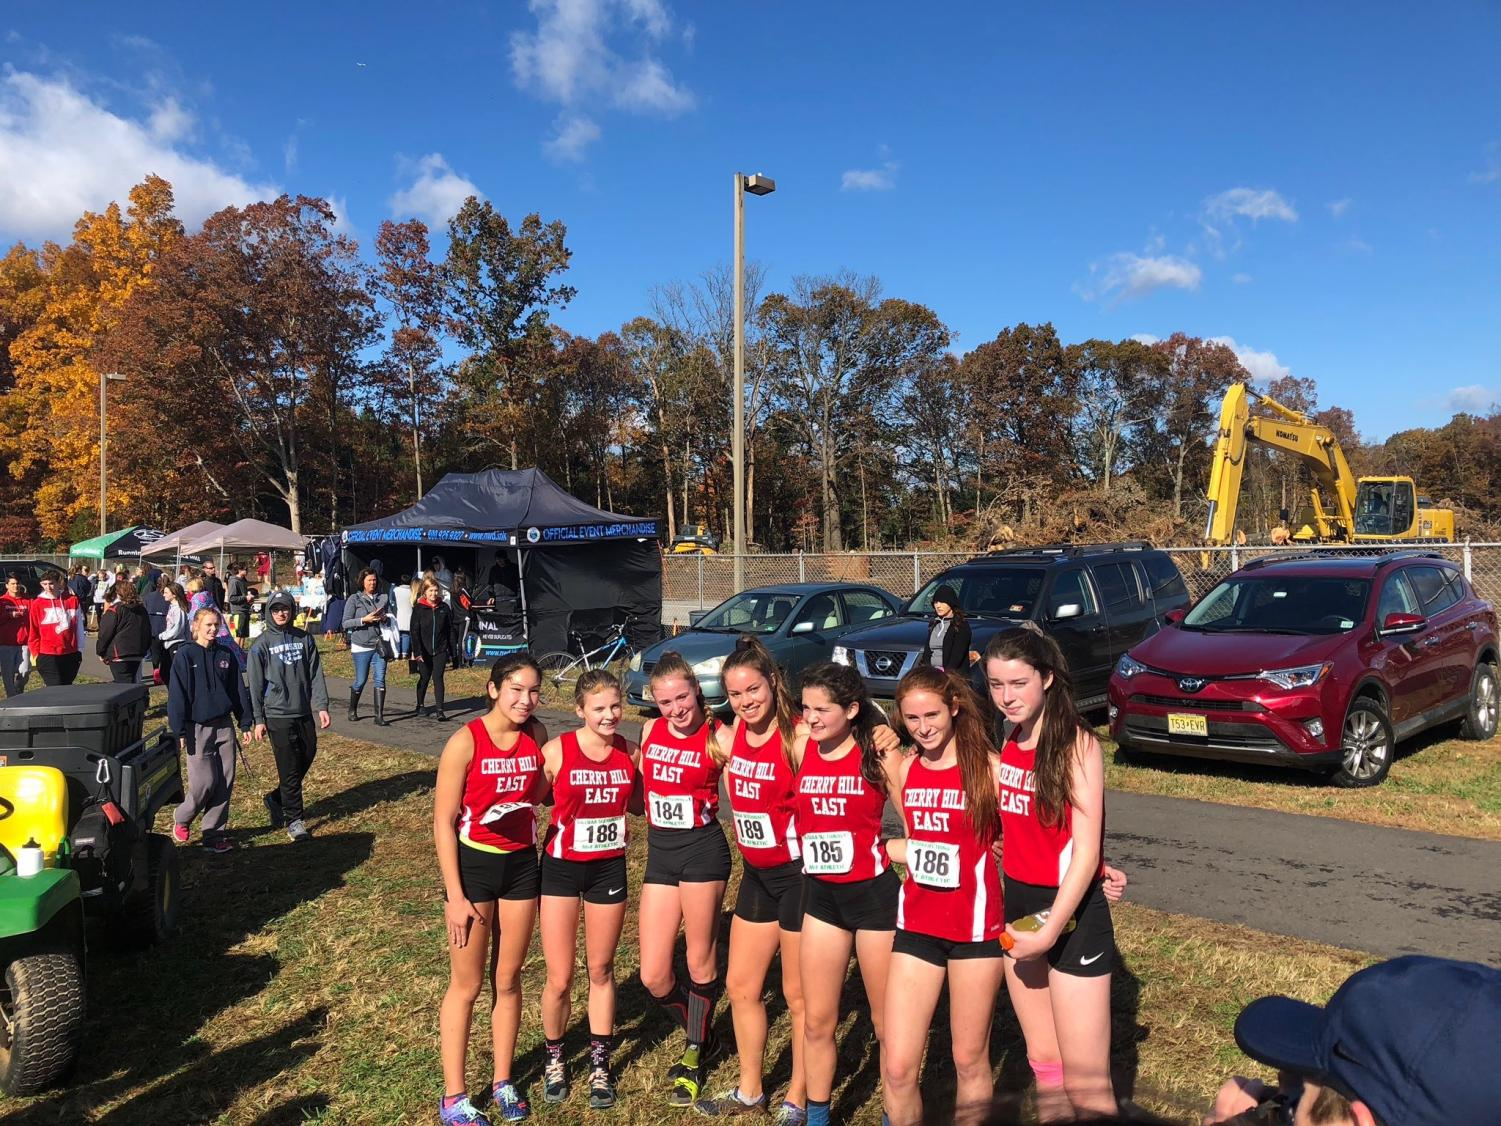 On November 3, the East girls' cross country took fifth place at the The New Jersey State Interscholastic Athletic Association (NJSIAA) Sectionals.